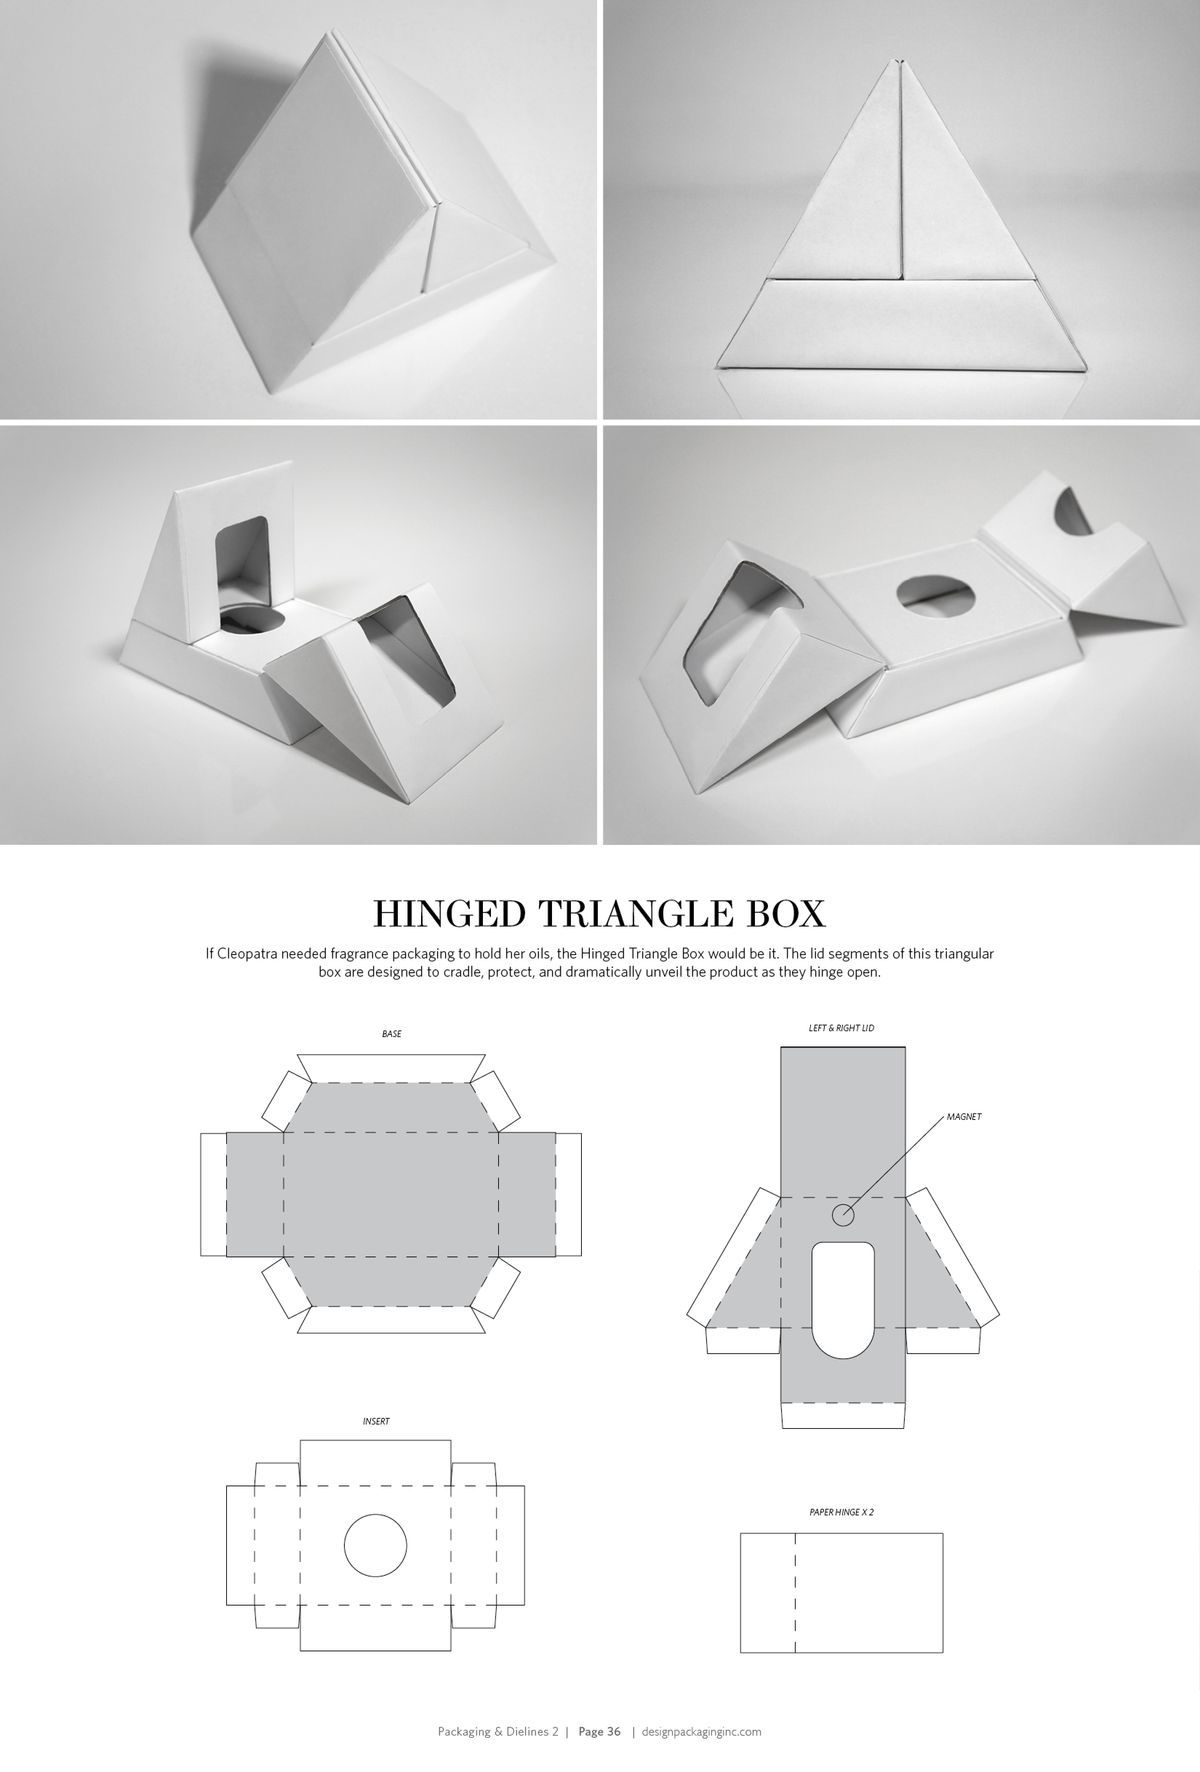 Hinged triangle box free resource for structural packaging design hinged triangle box free resource for structural packaging design dielines malvernweather Choice Image